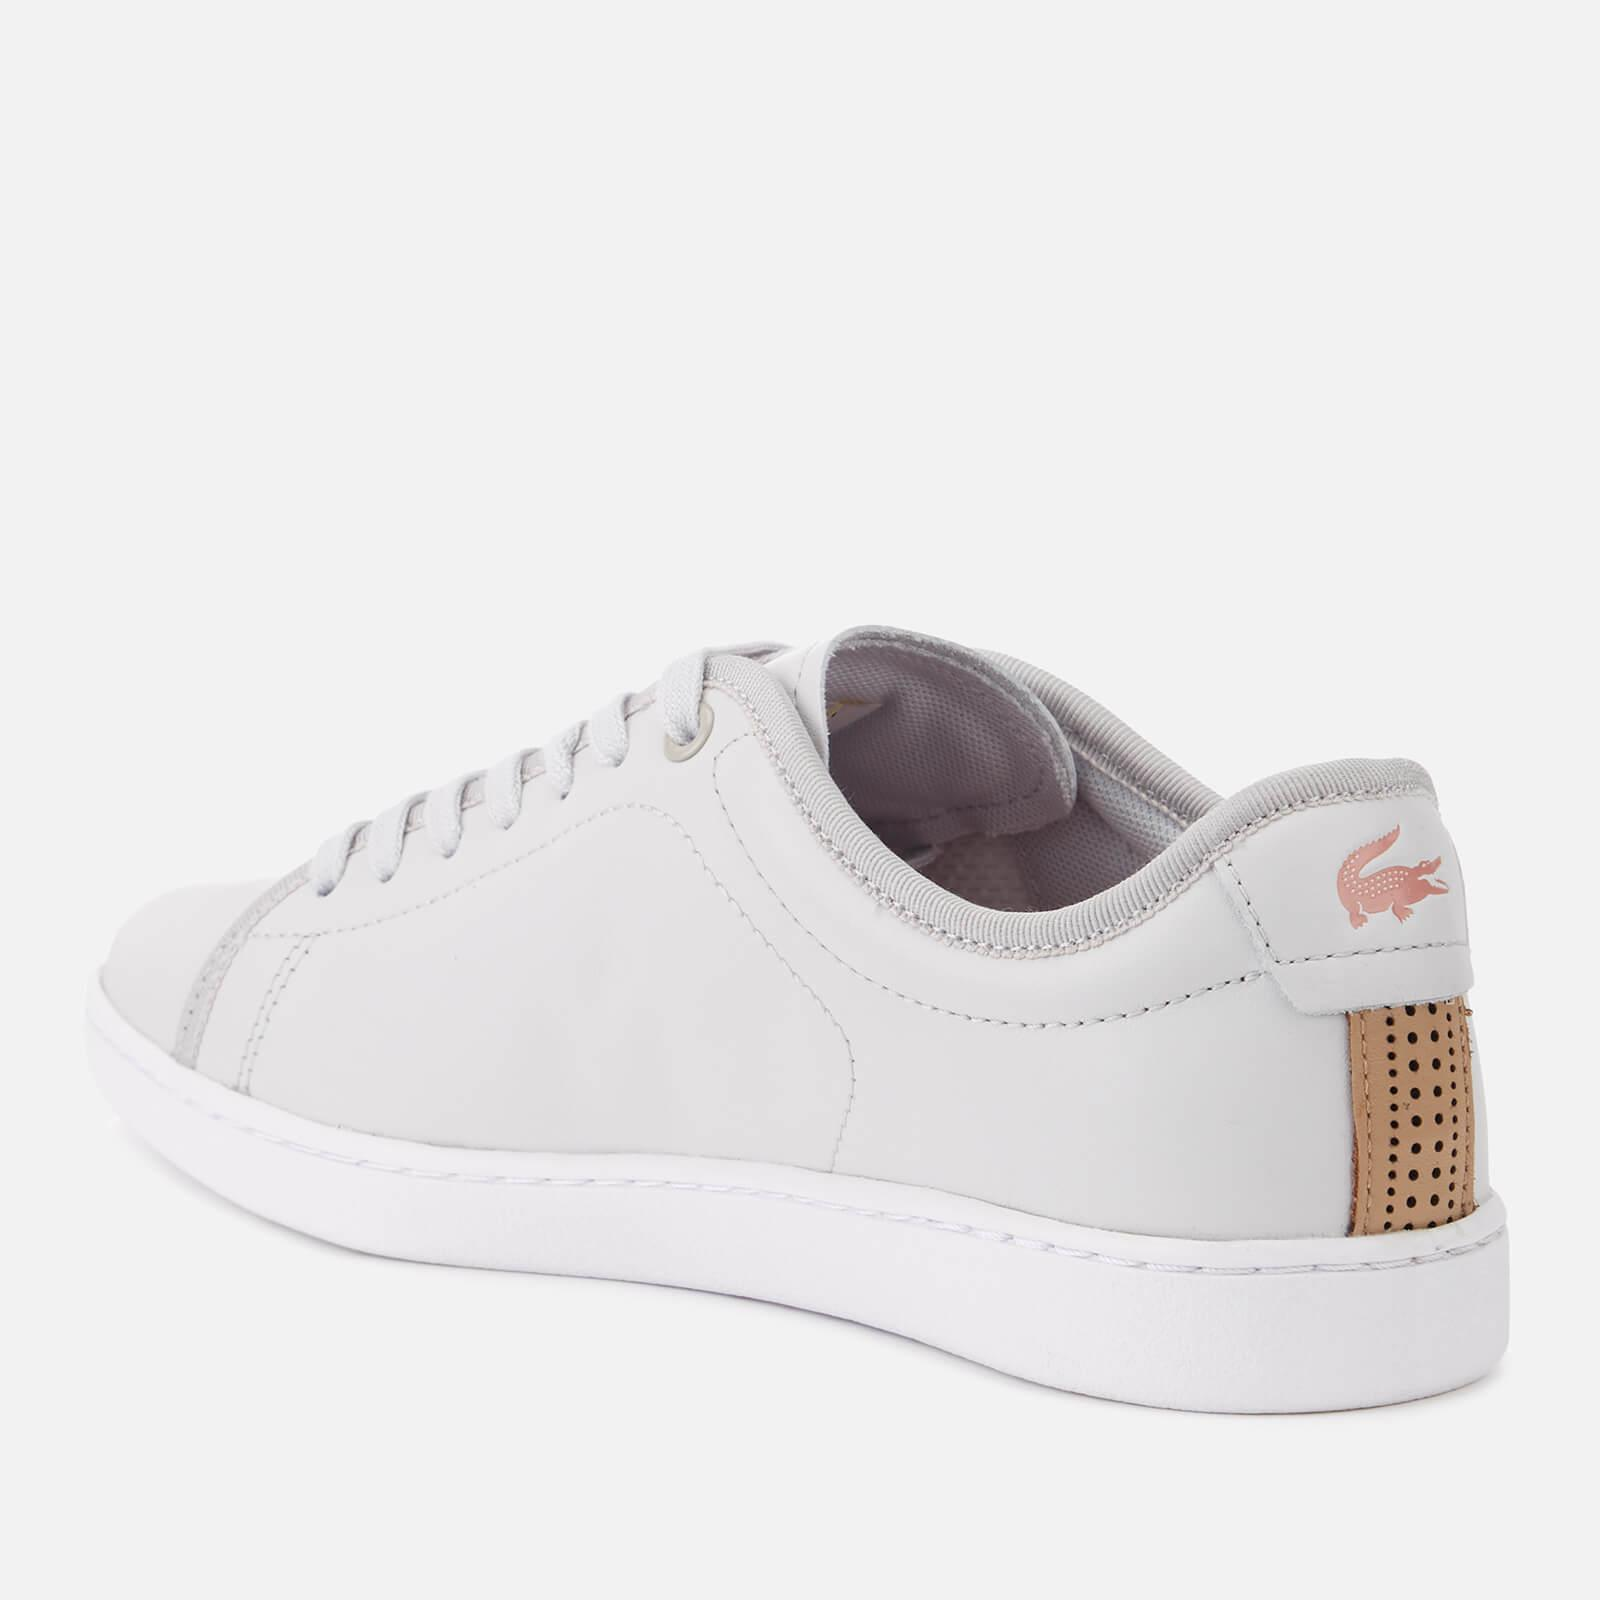 Lacoste Carnaby Evo 318 6 Leather